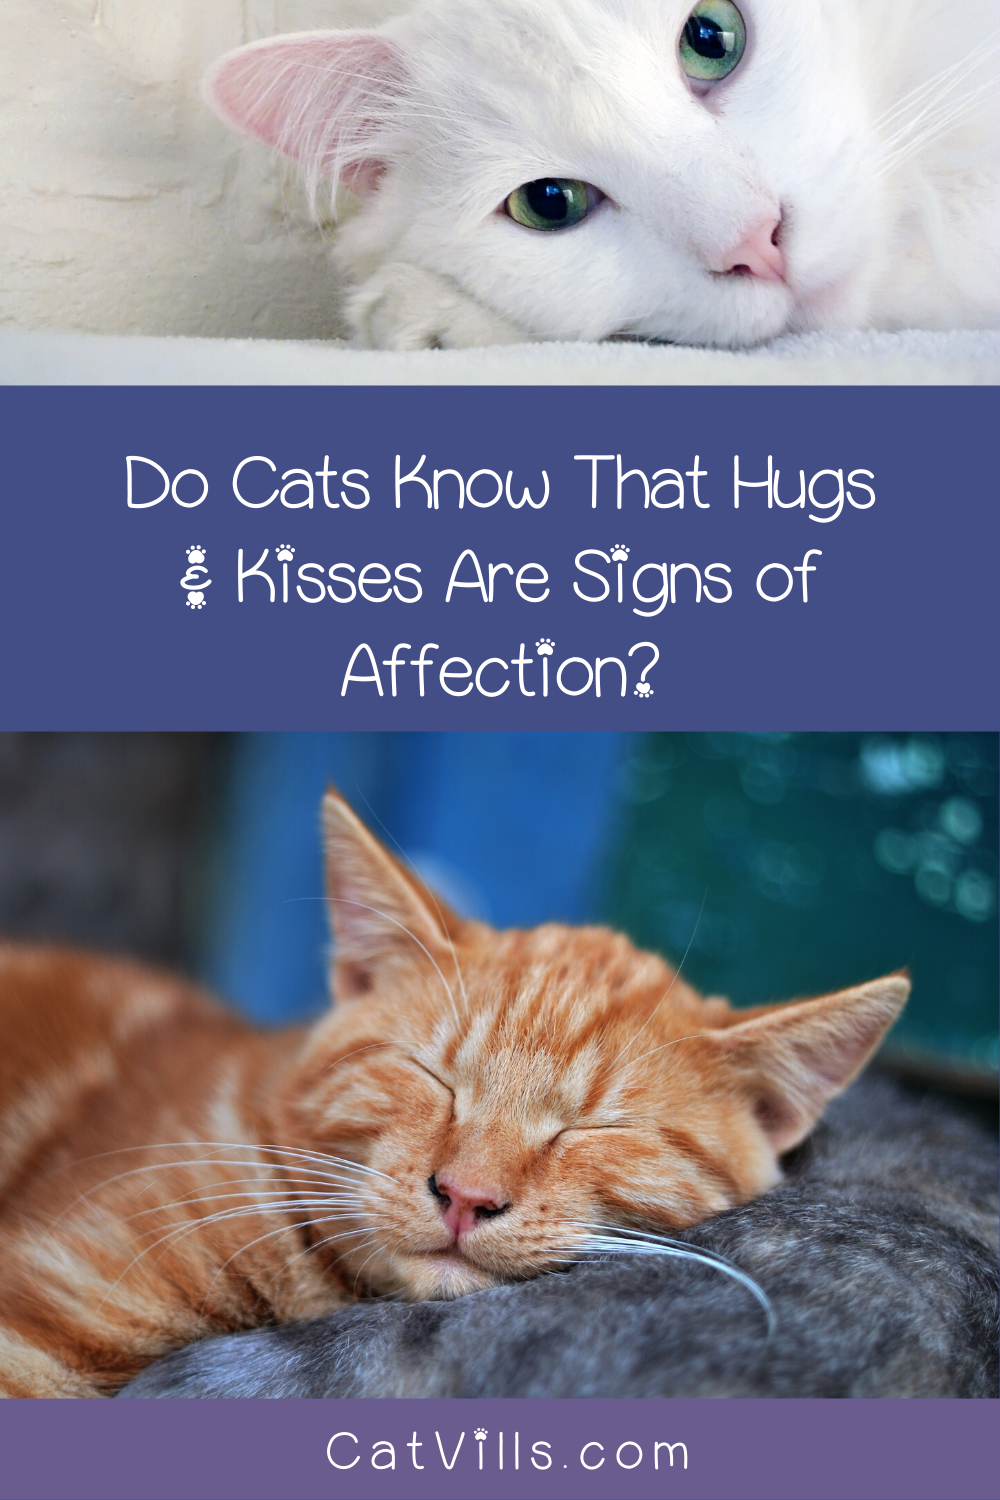 Do Cats Know That Hugs Kisses Are Signs Of Affection Catvills In 2020 Cat Behavior Pet Care Cats Cats